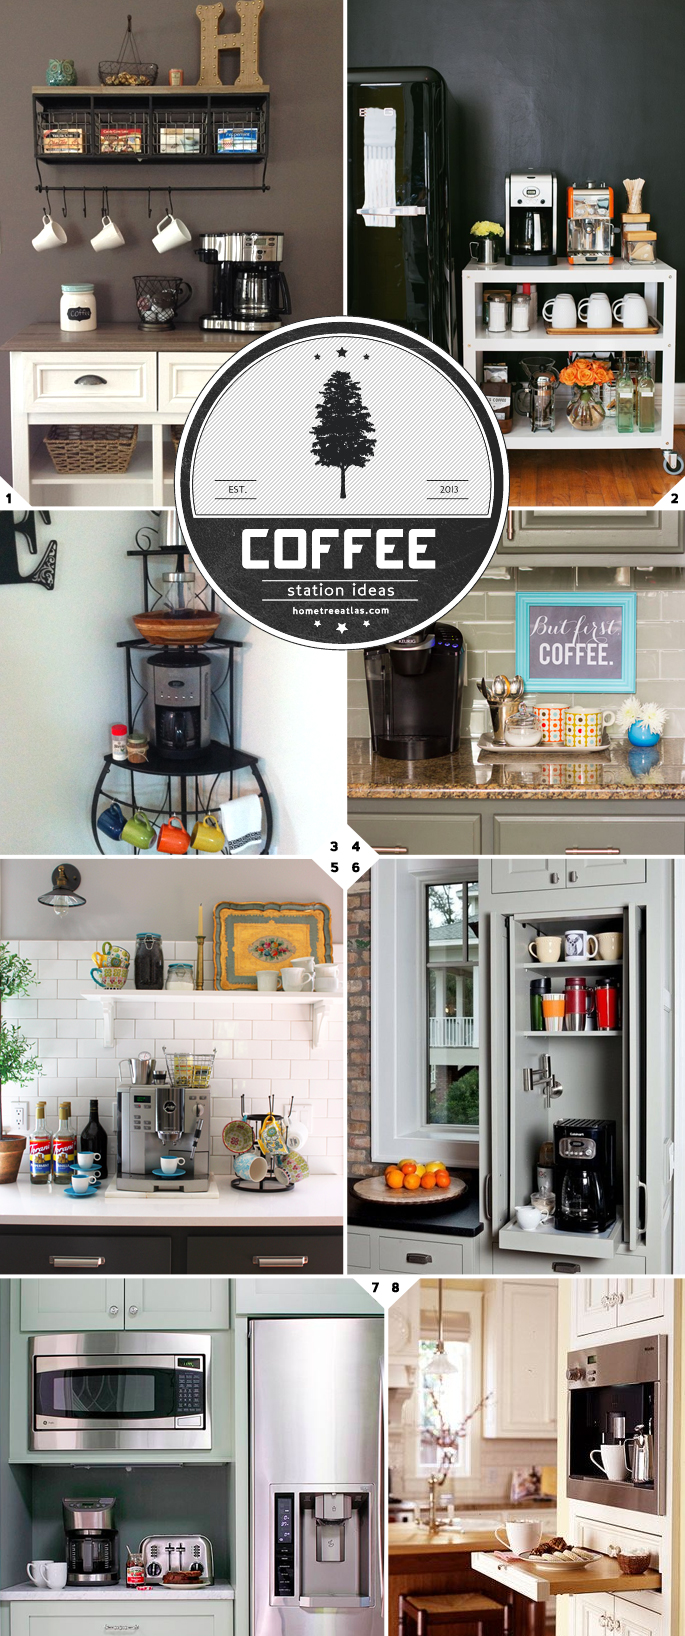 Kitchen Coffee Station Ideas